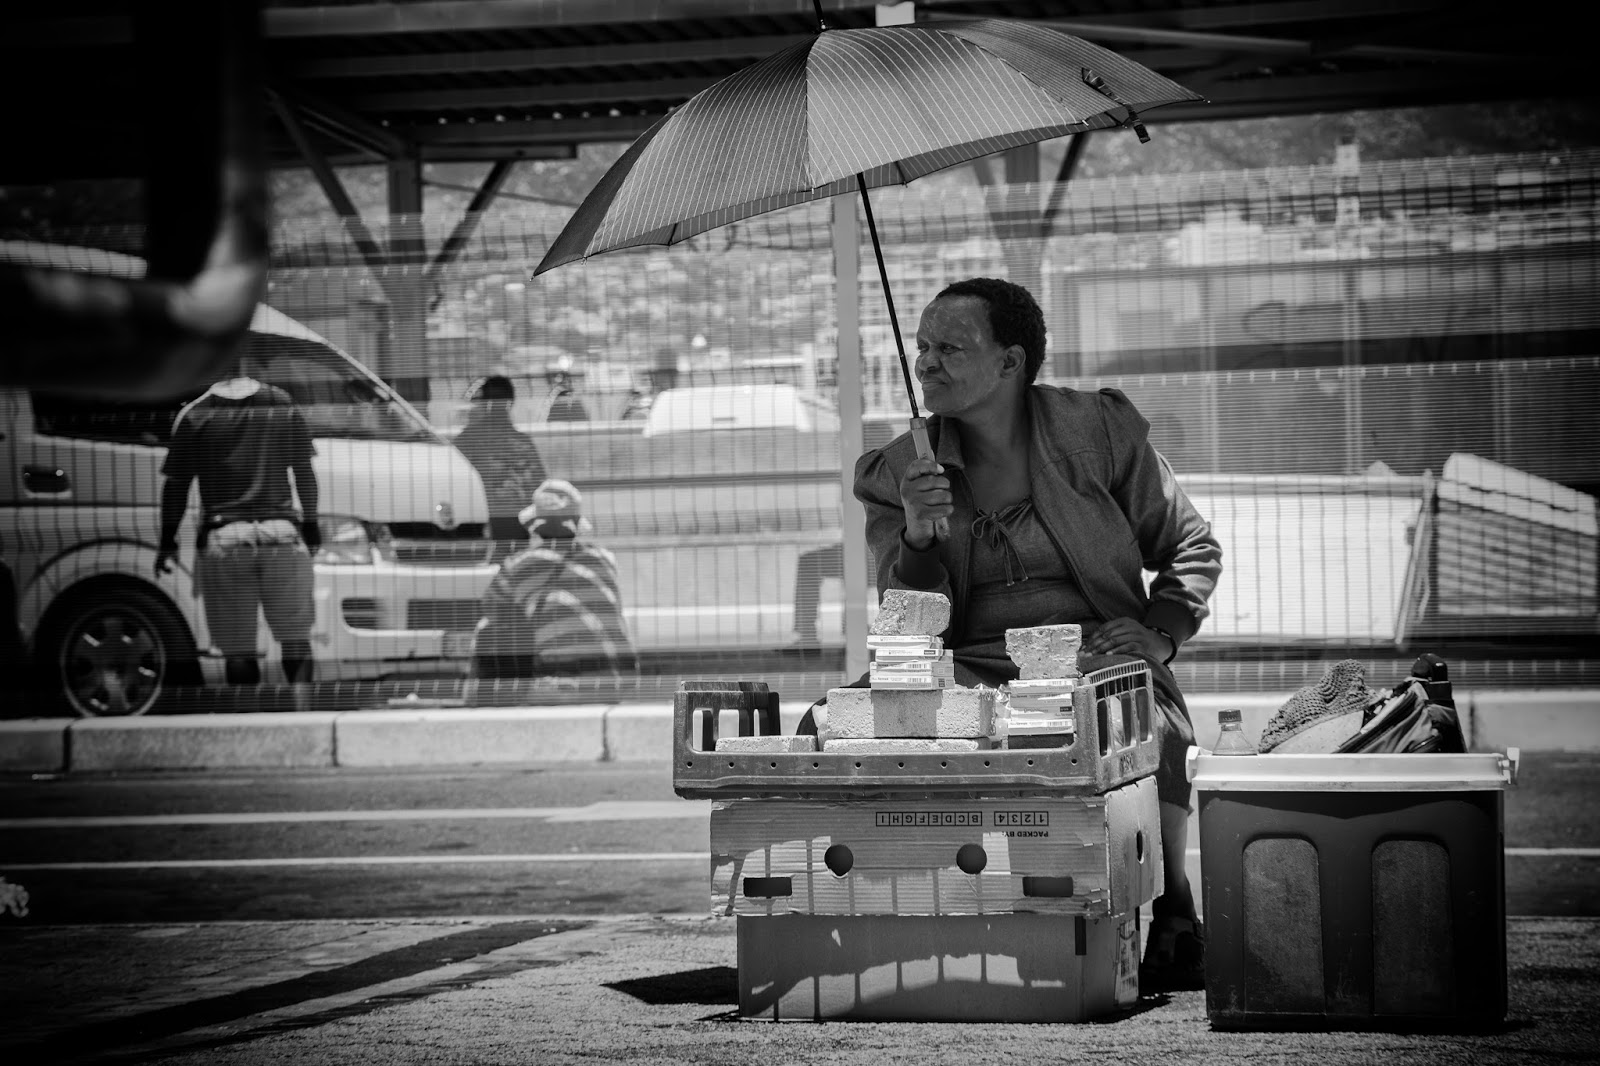 A vendor in the Cape Town taxi rank under her umbrella